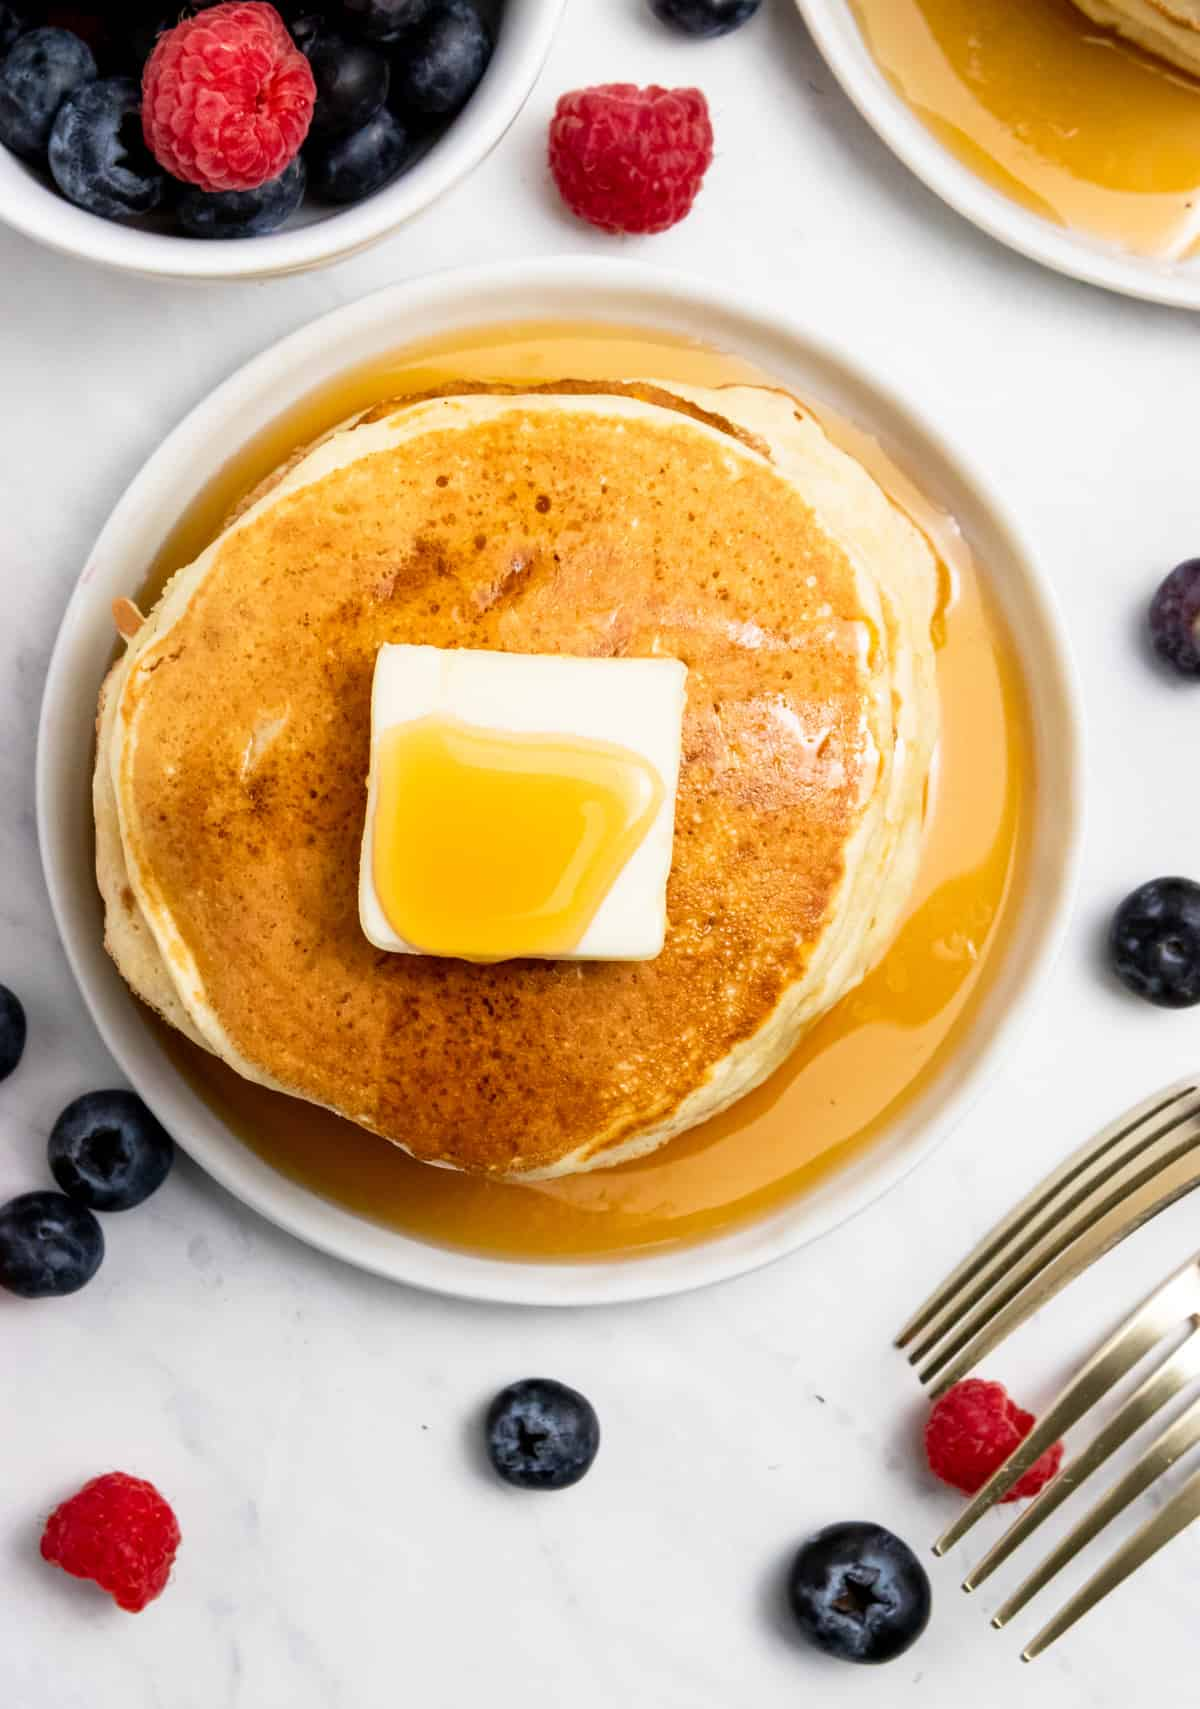 Overhead view of fluffy pancakes with butter and berries.